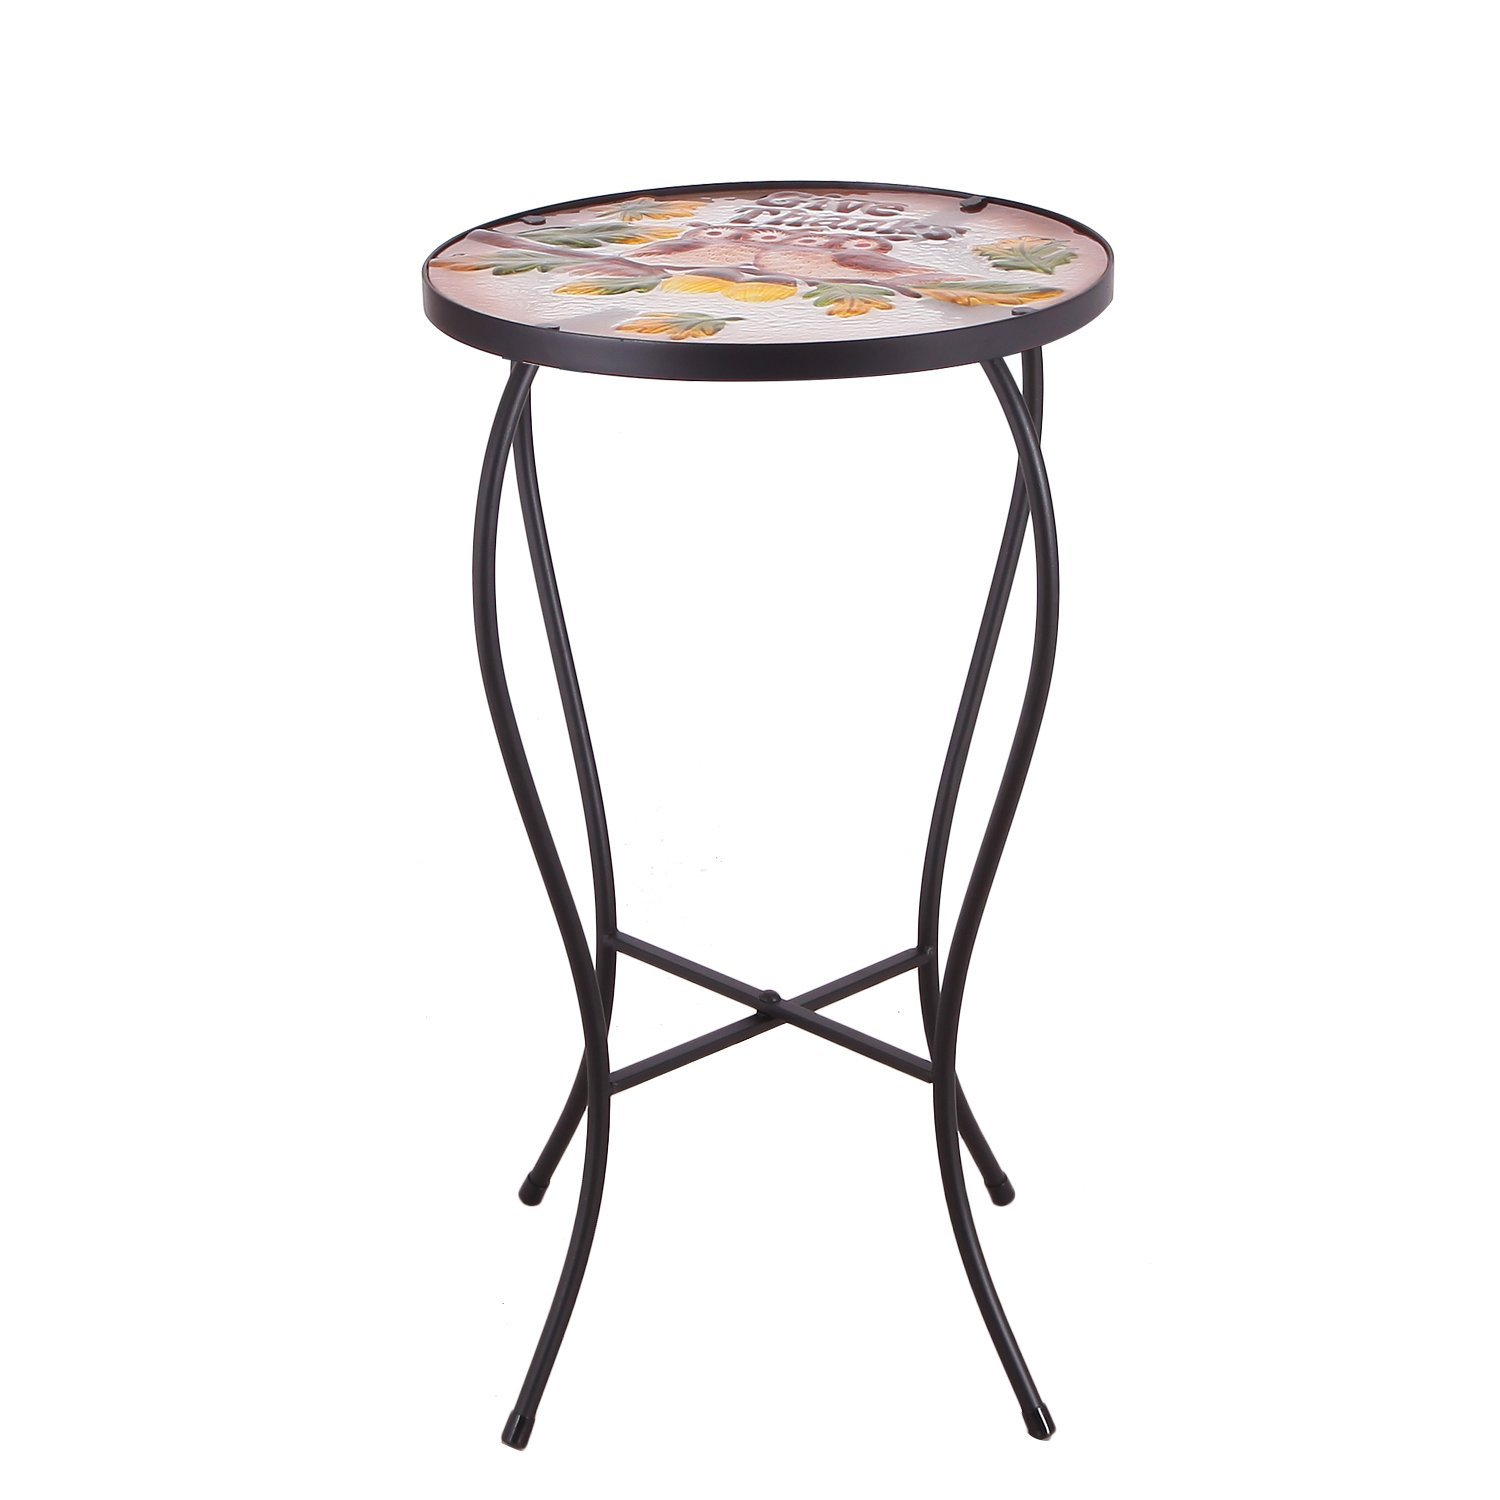 homebeez couple owes mosaic round plant stand accent outdoor side table black color curve tube legs indoor height inches garden narrow sofa inch christmas tablecloth buffet ikea